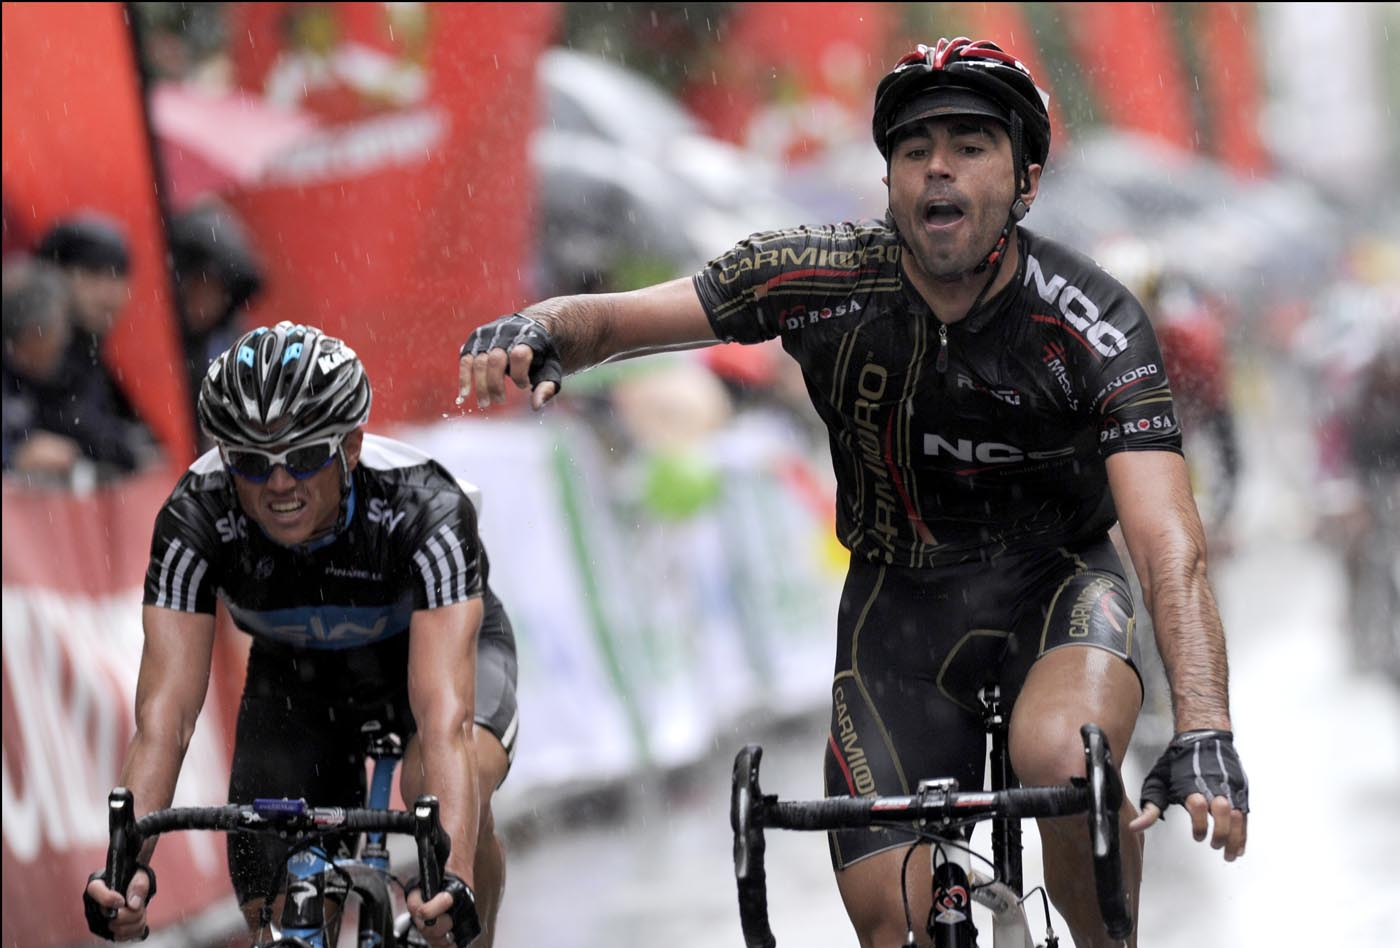 Francisco Ventoso wins stage 5, Tour of Andalusia 2010